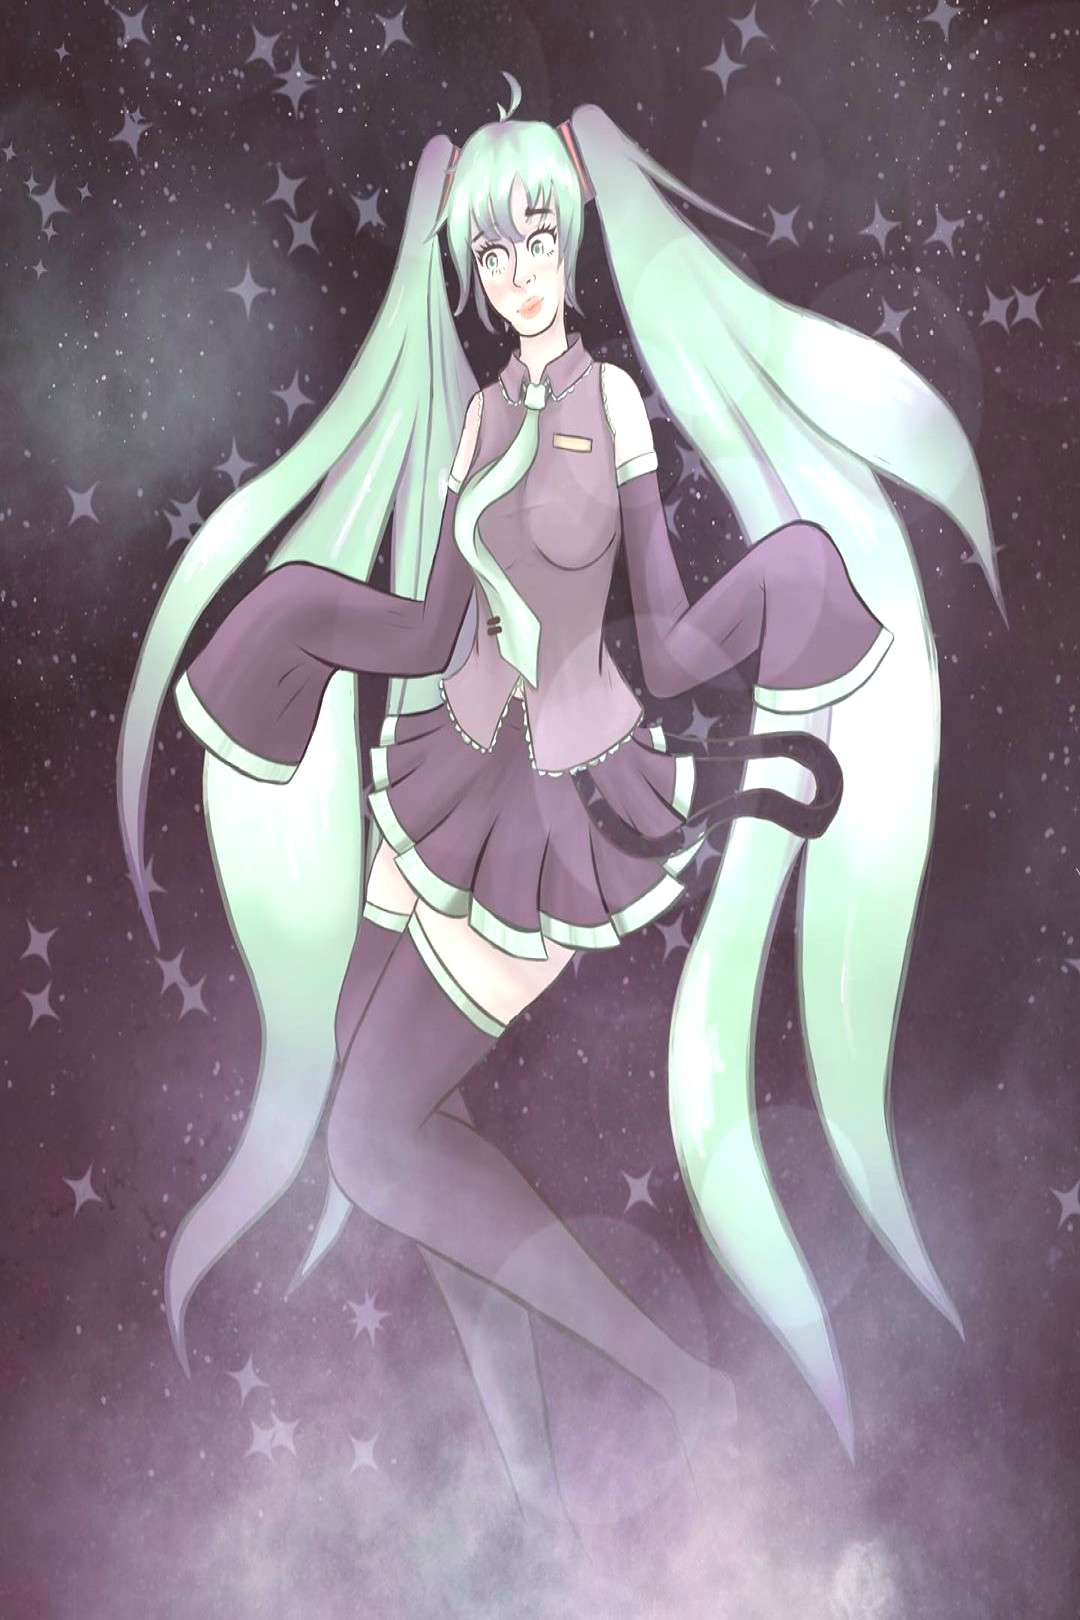 Another redraw of Miku